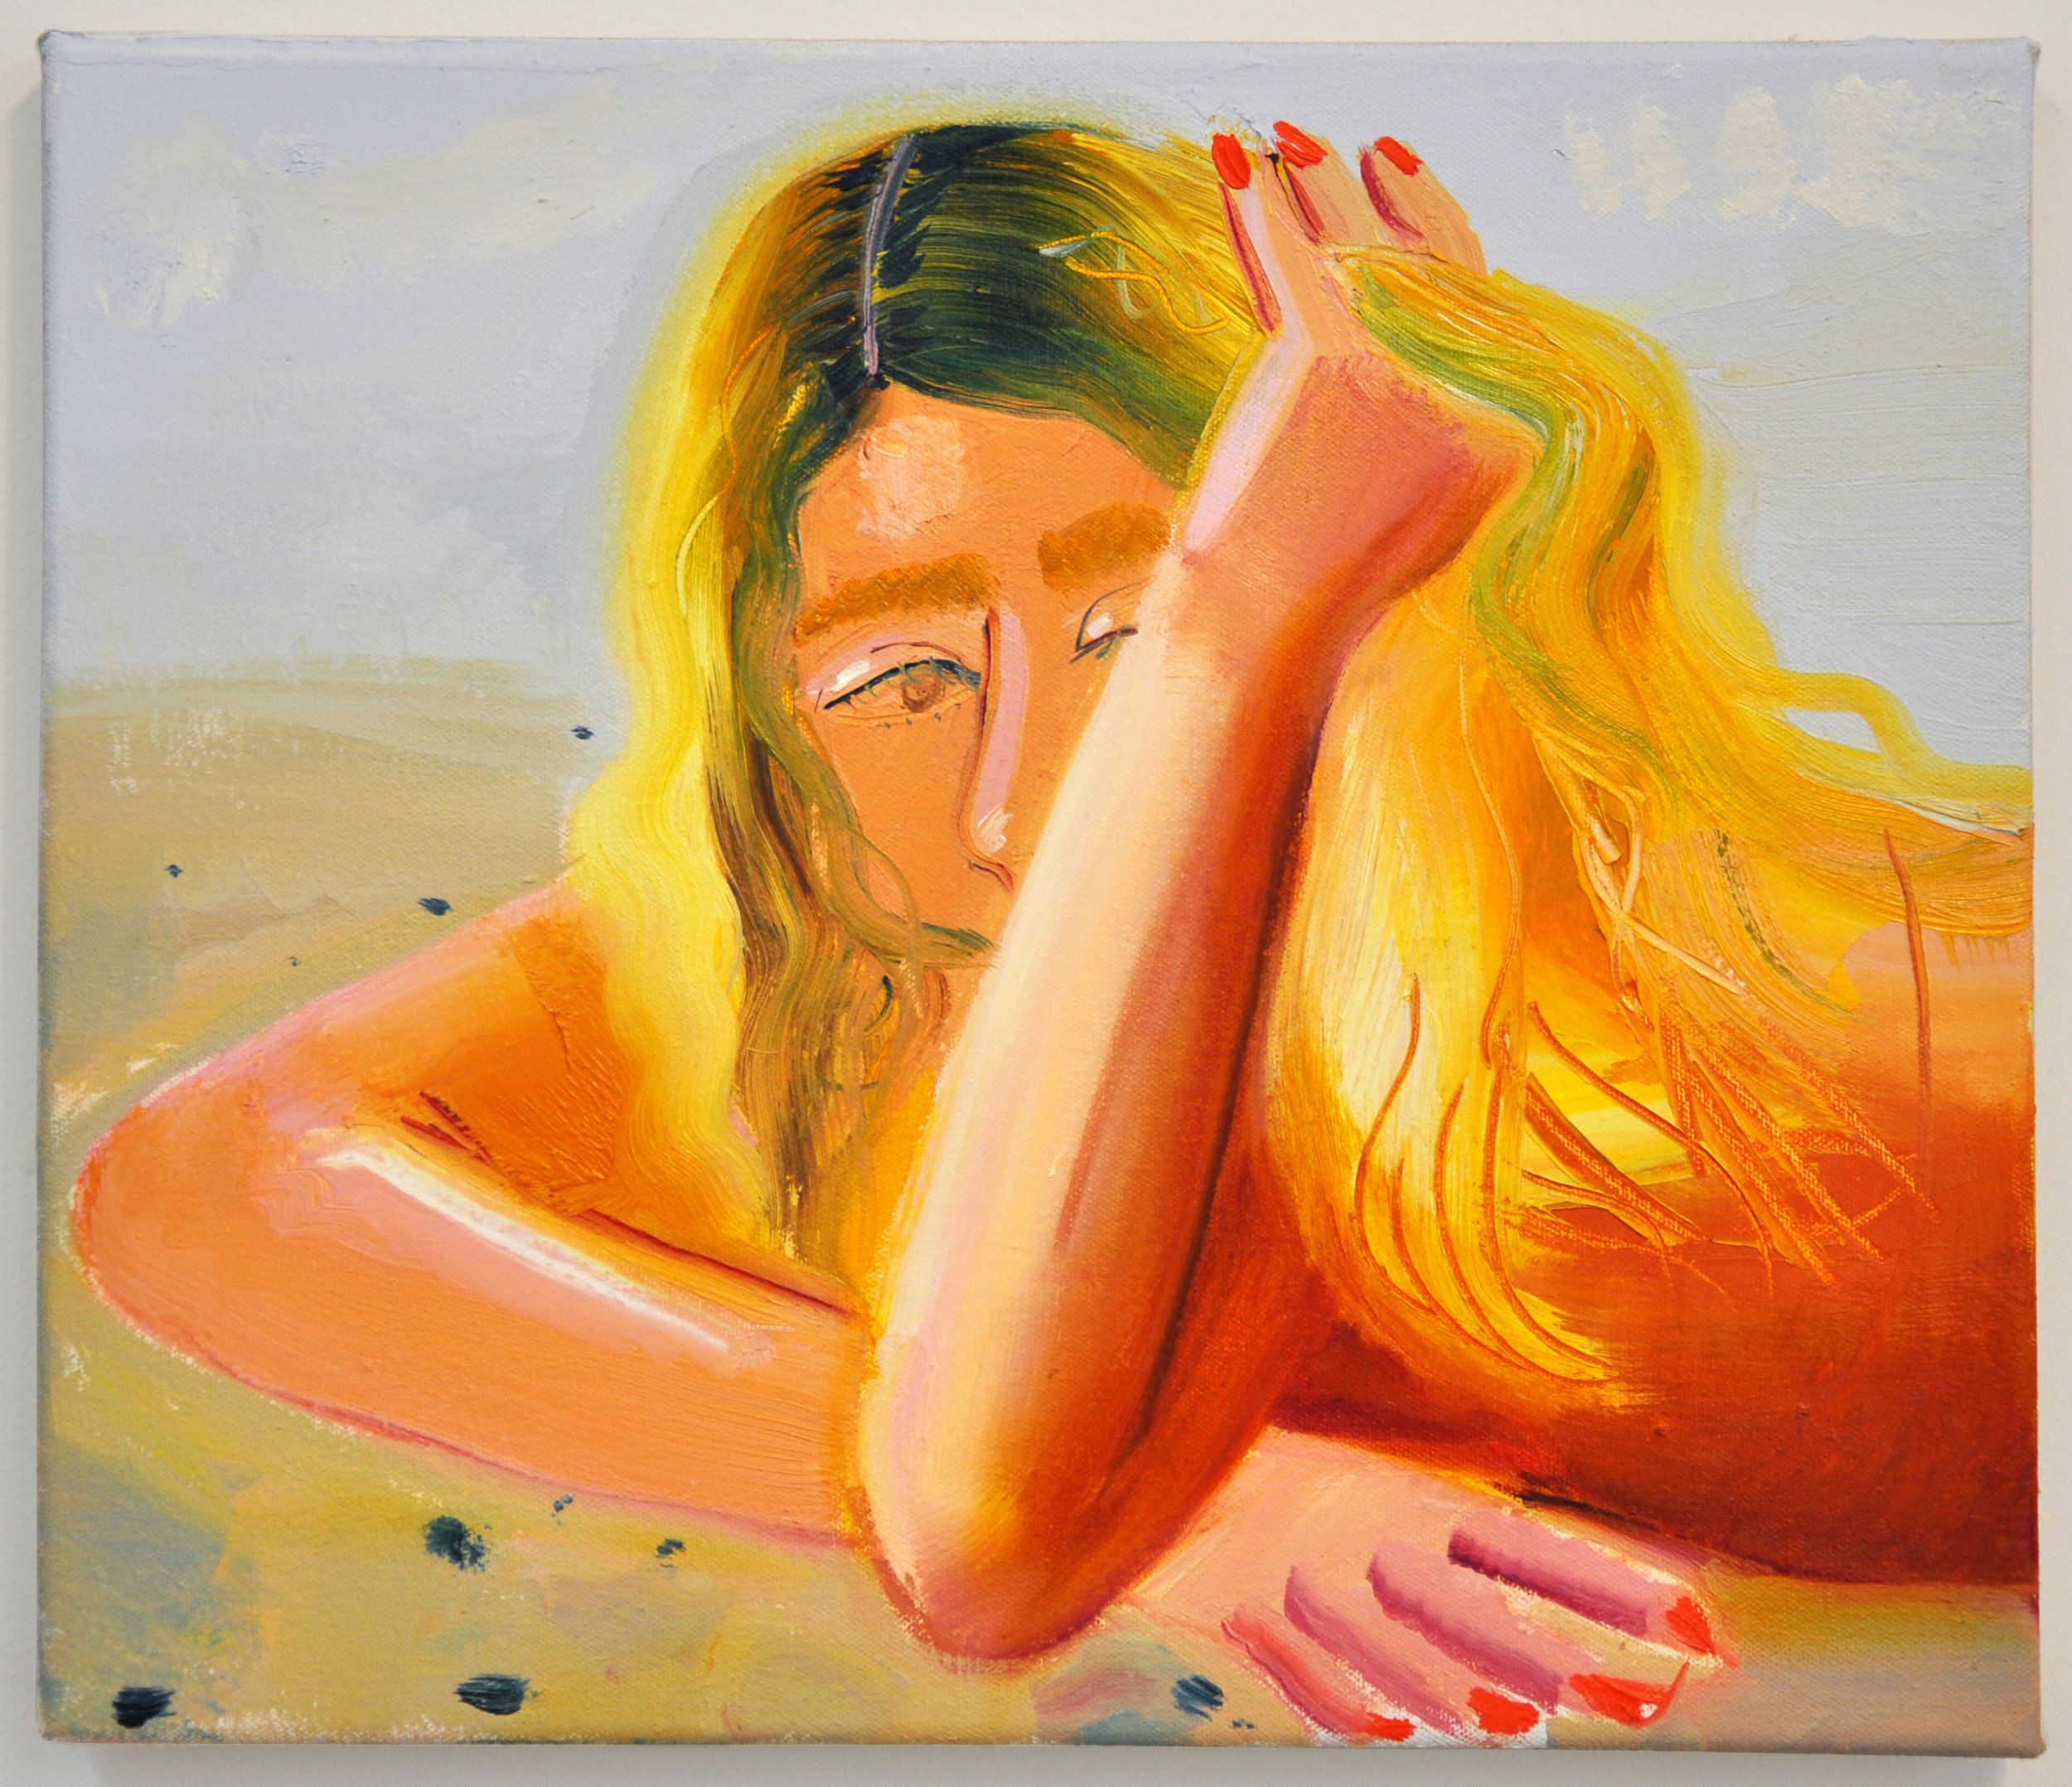 Blondie.  Oil on canvas. 14 x 15 inches. Nikki Maloof.